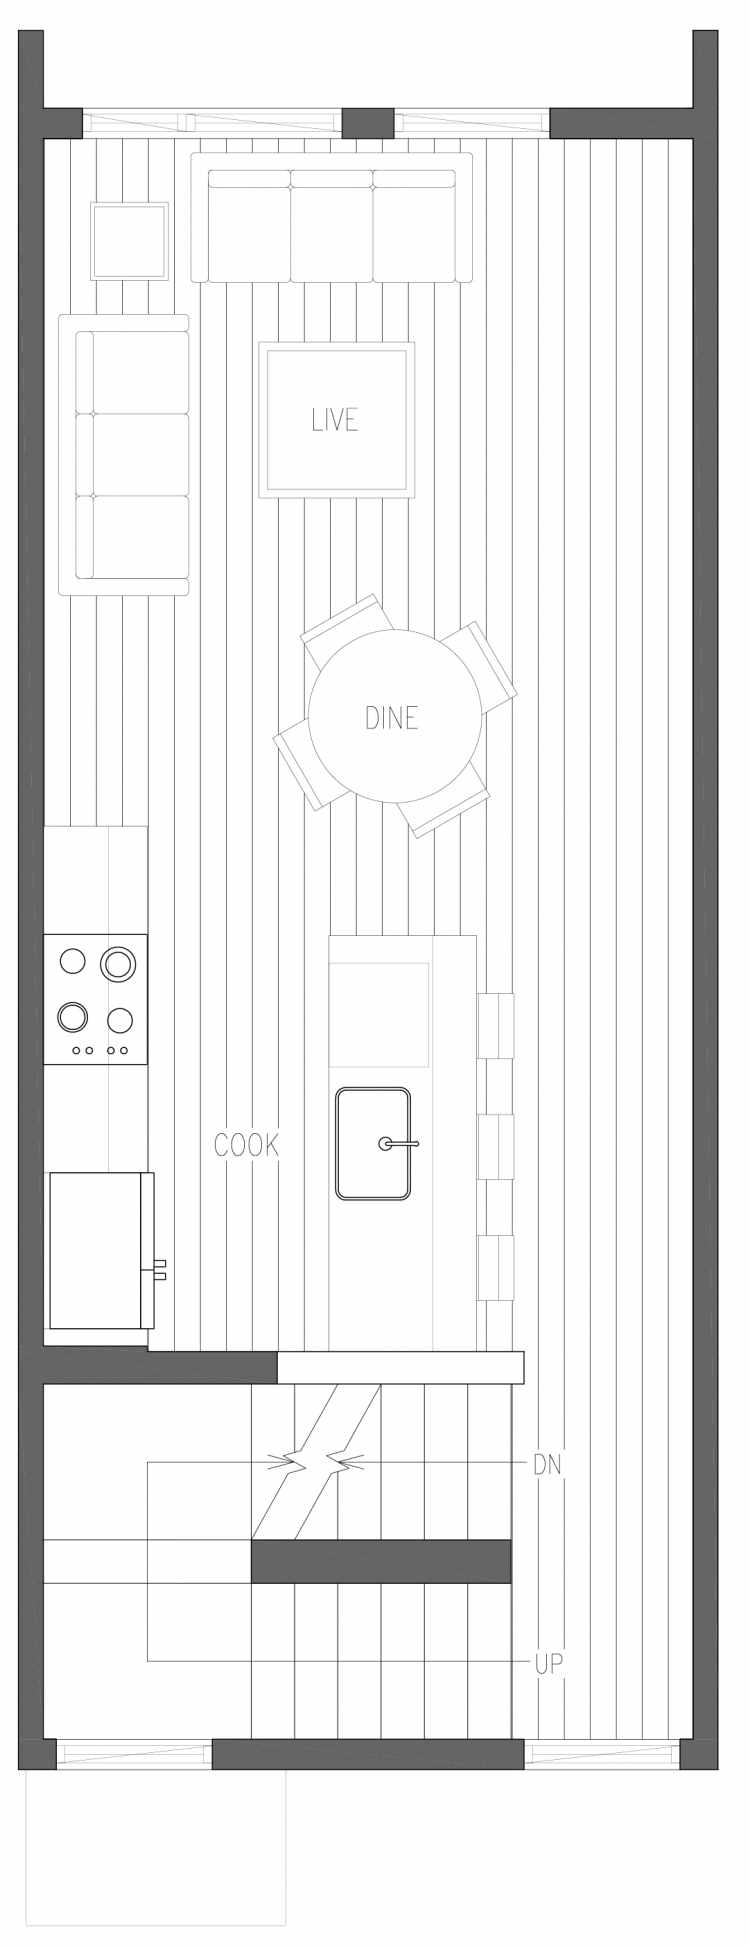 Second Floor Plan of 6419 14th Ave NW, One of the Oleana Townhomes in Ballard by Isola Homes